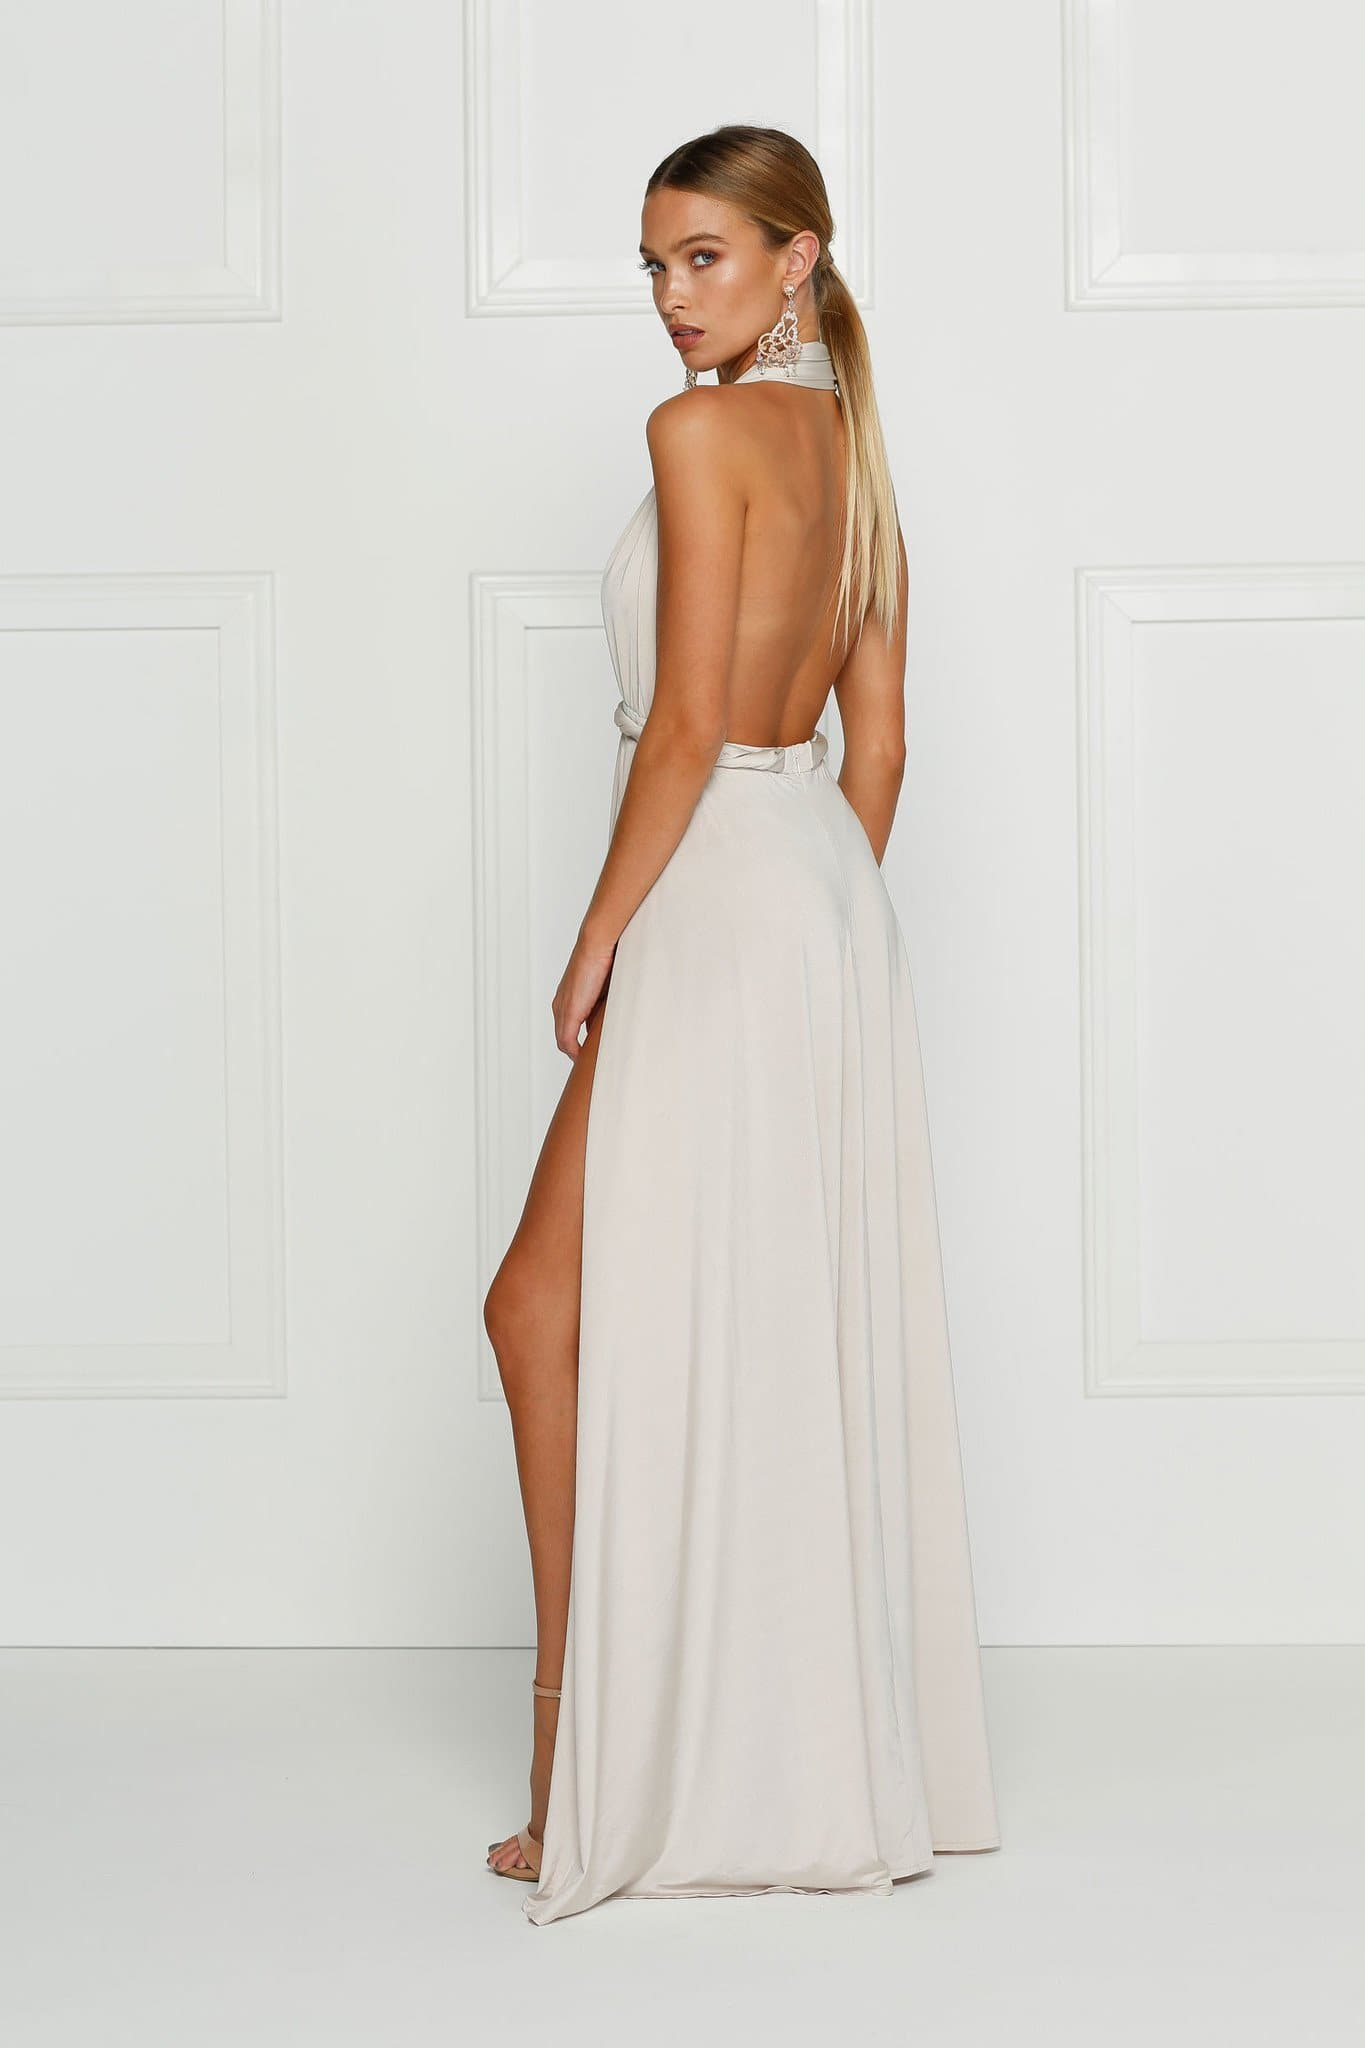 Catalina - Oyster Grecian Style Jersey Gown with High Slits & Low Back